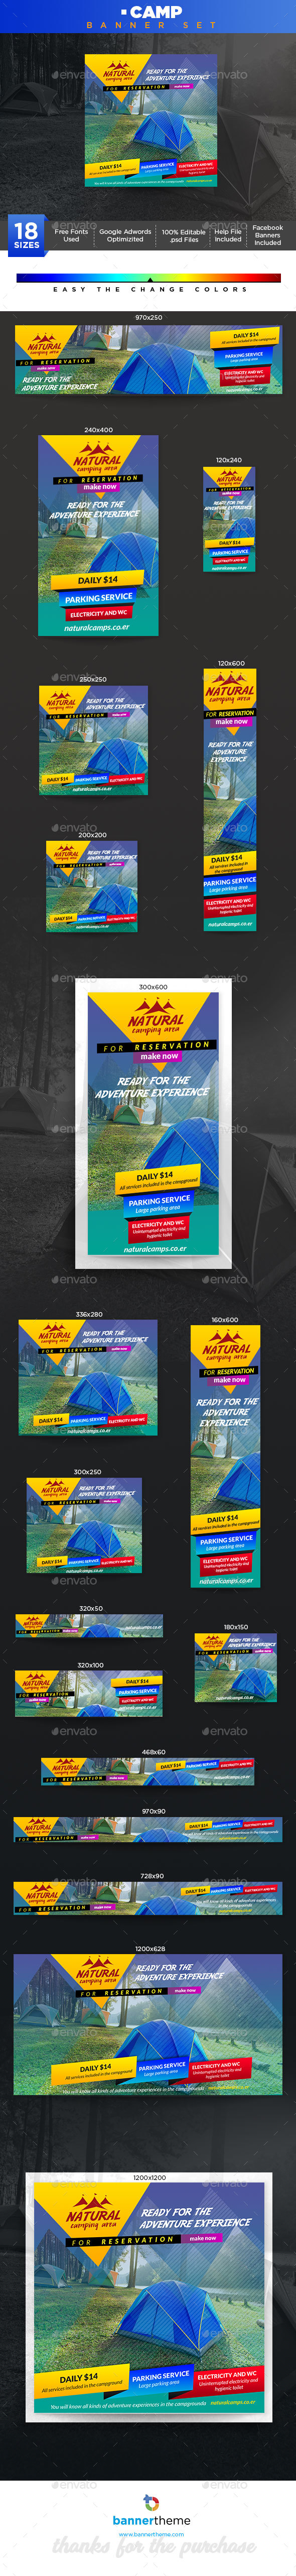 Camp Banner - Banners & Ads Web Elements